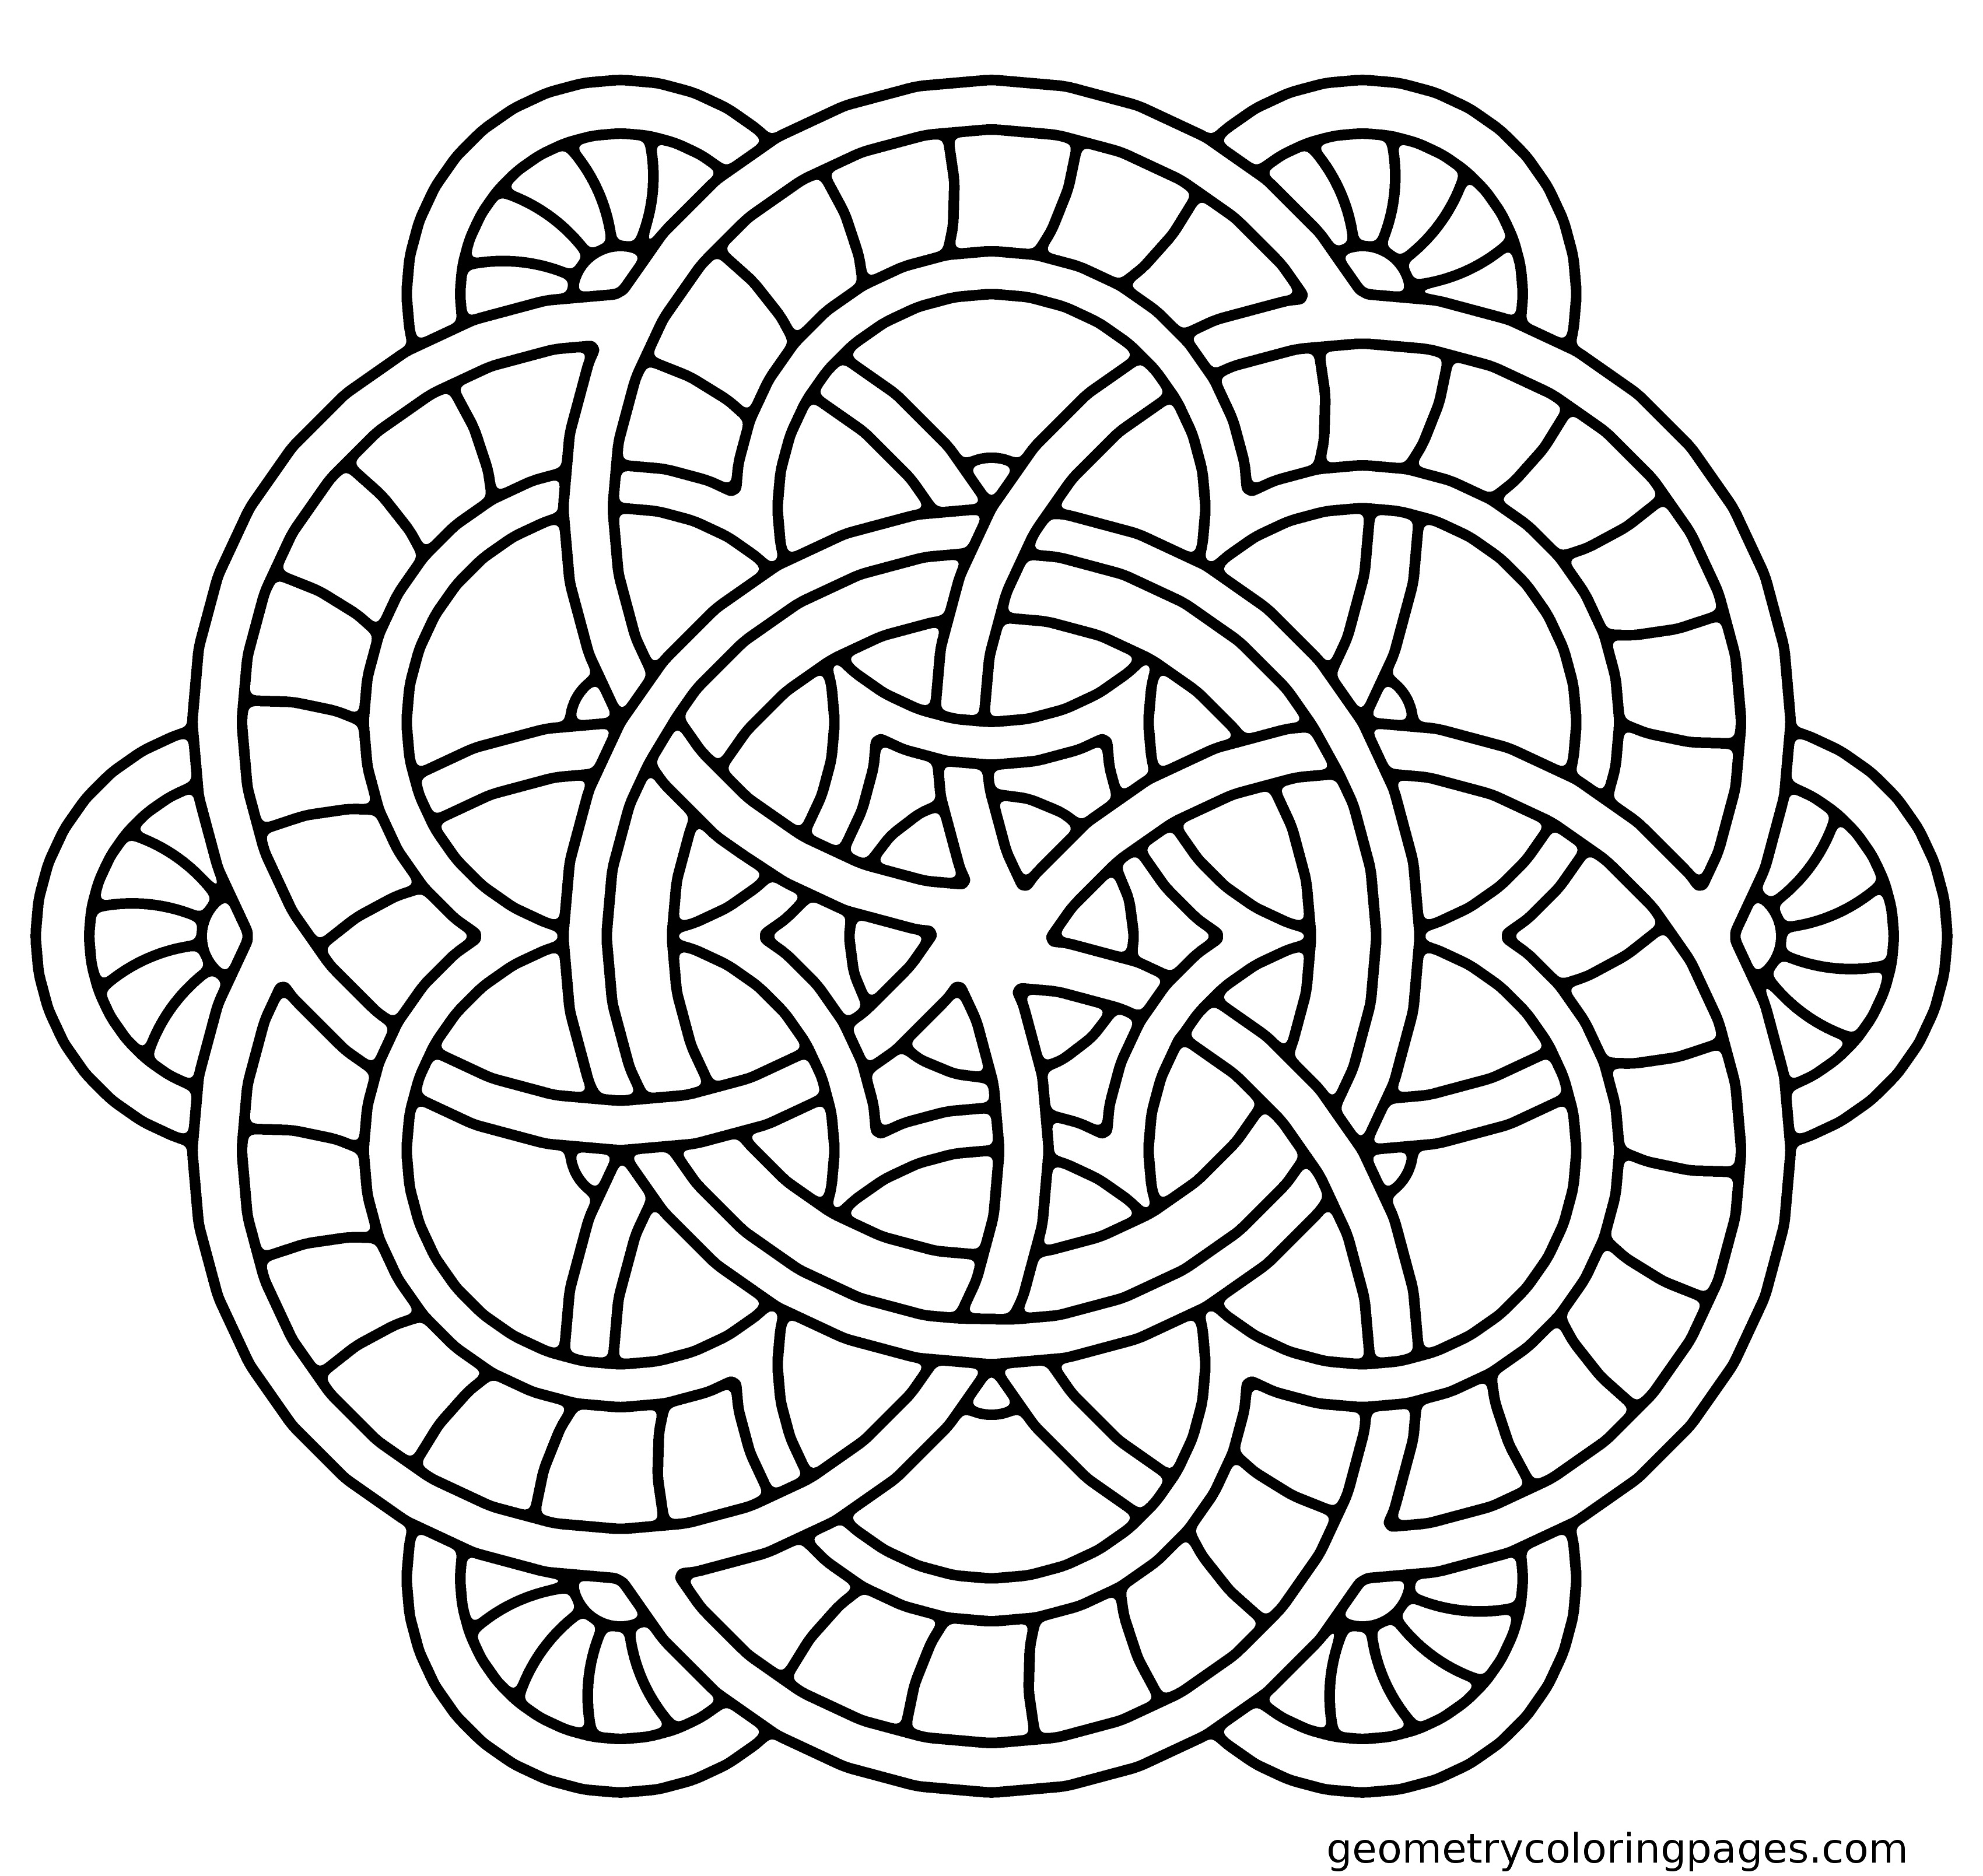 3400x3217 Cool Mandala Coloring Pages Advanced Level Aecost Free Coloring